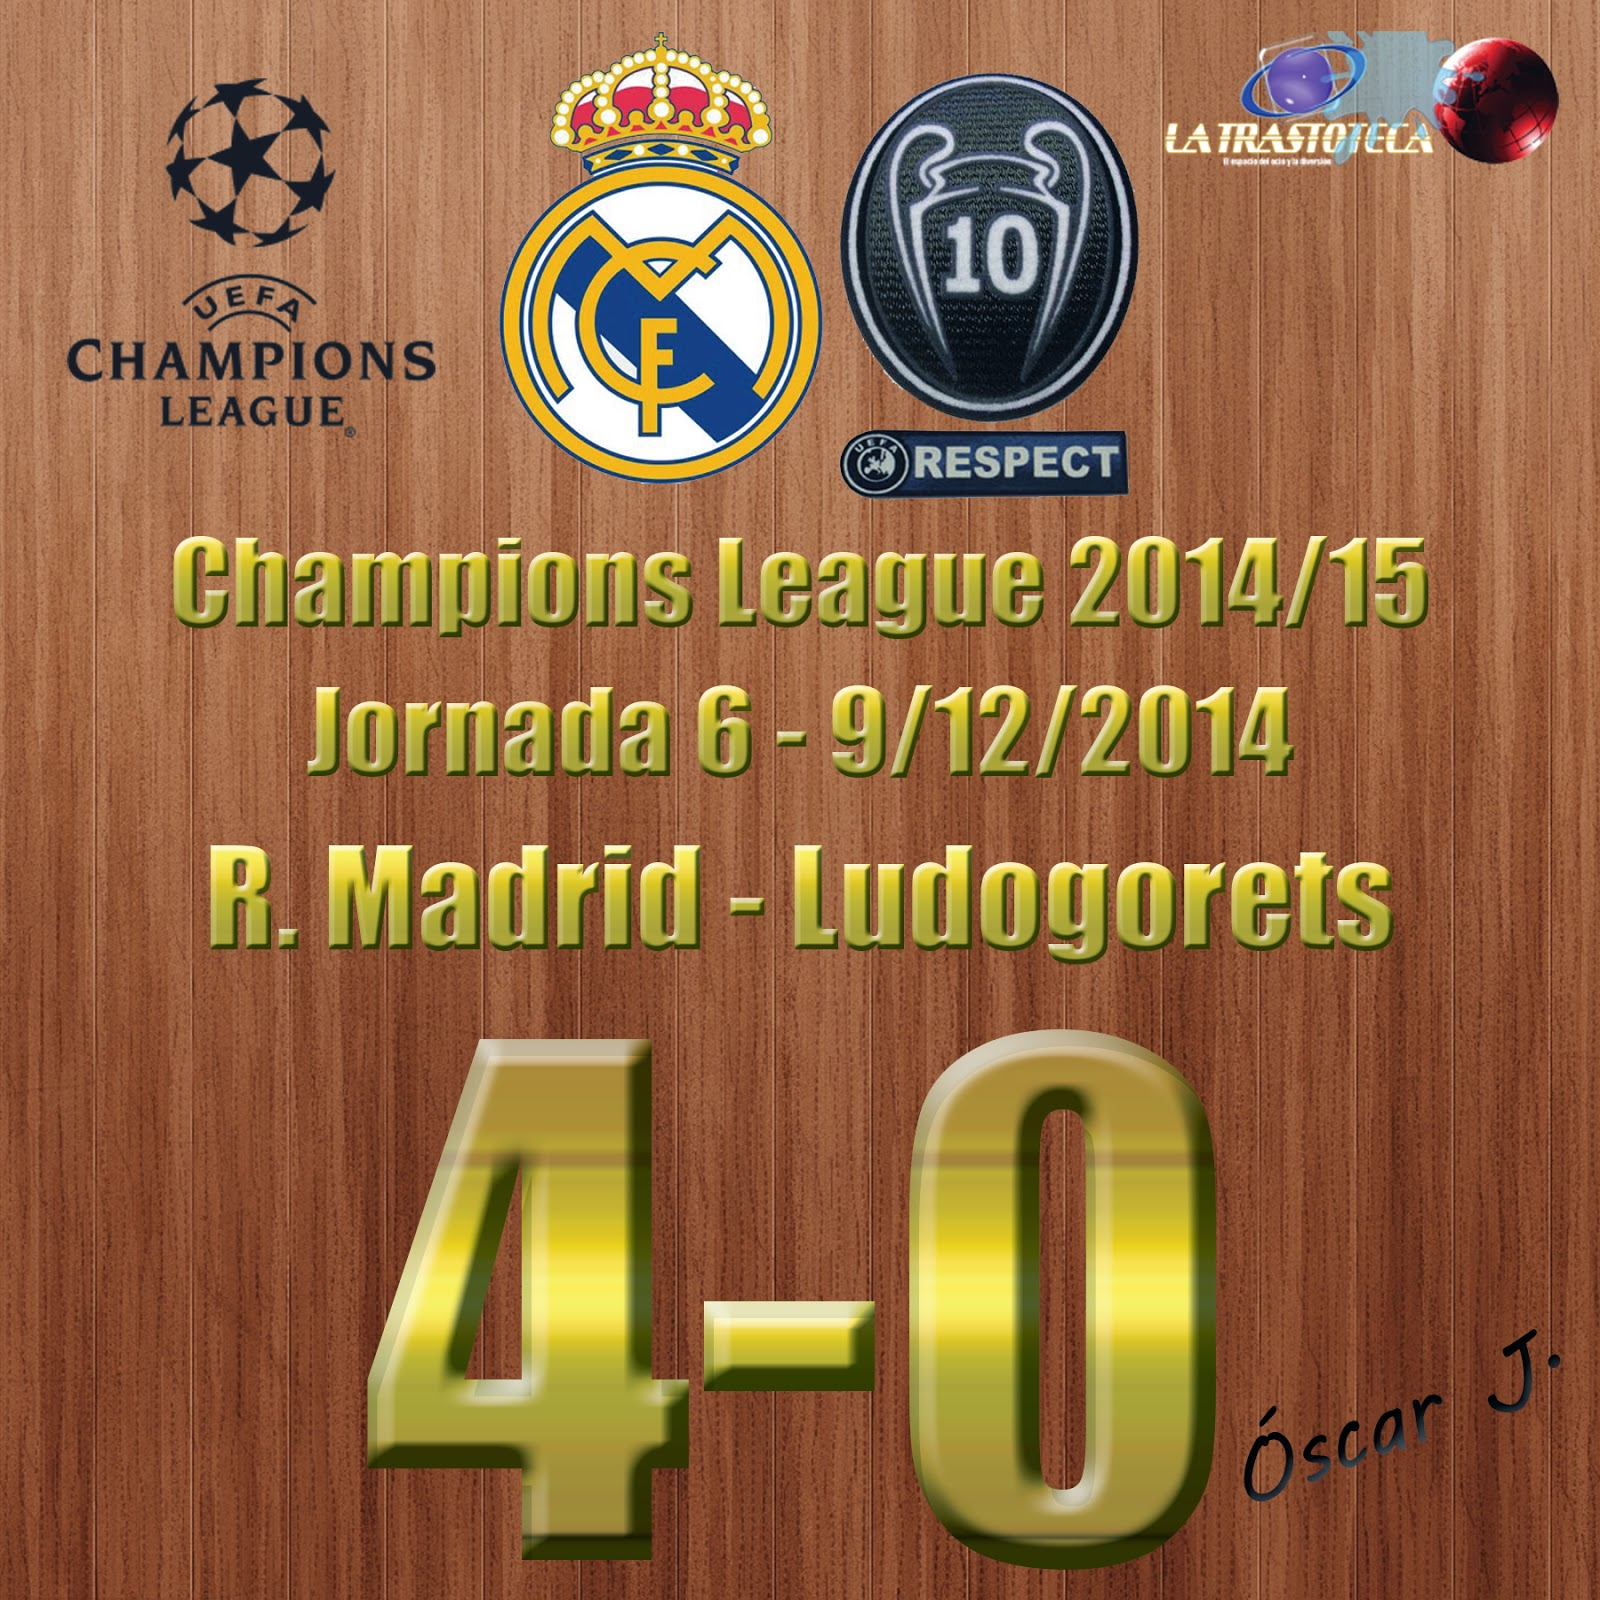 Real Madrid 4-0 Ludogorets - Champions League  2014/15 - Jornada 6 - (9/12/2014)